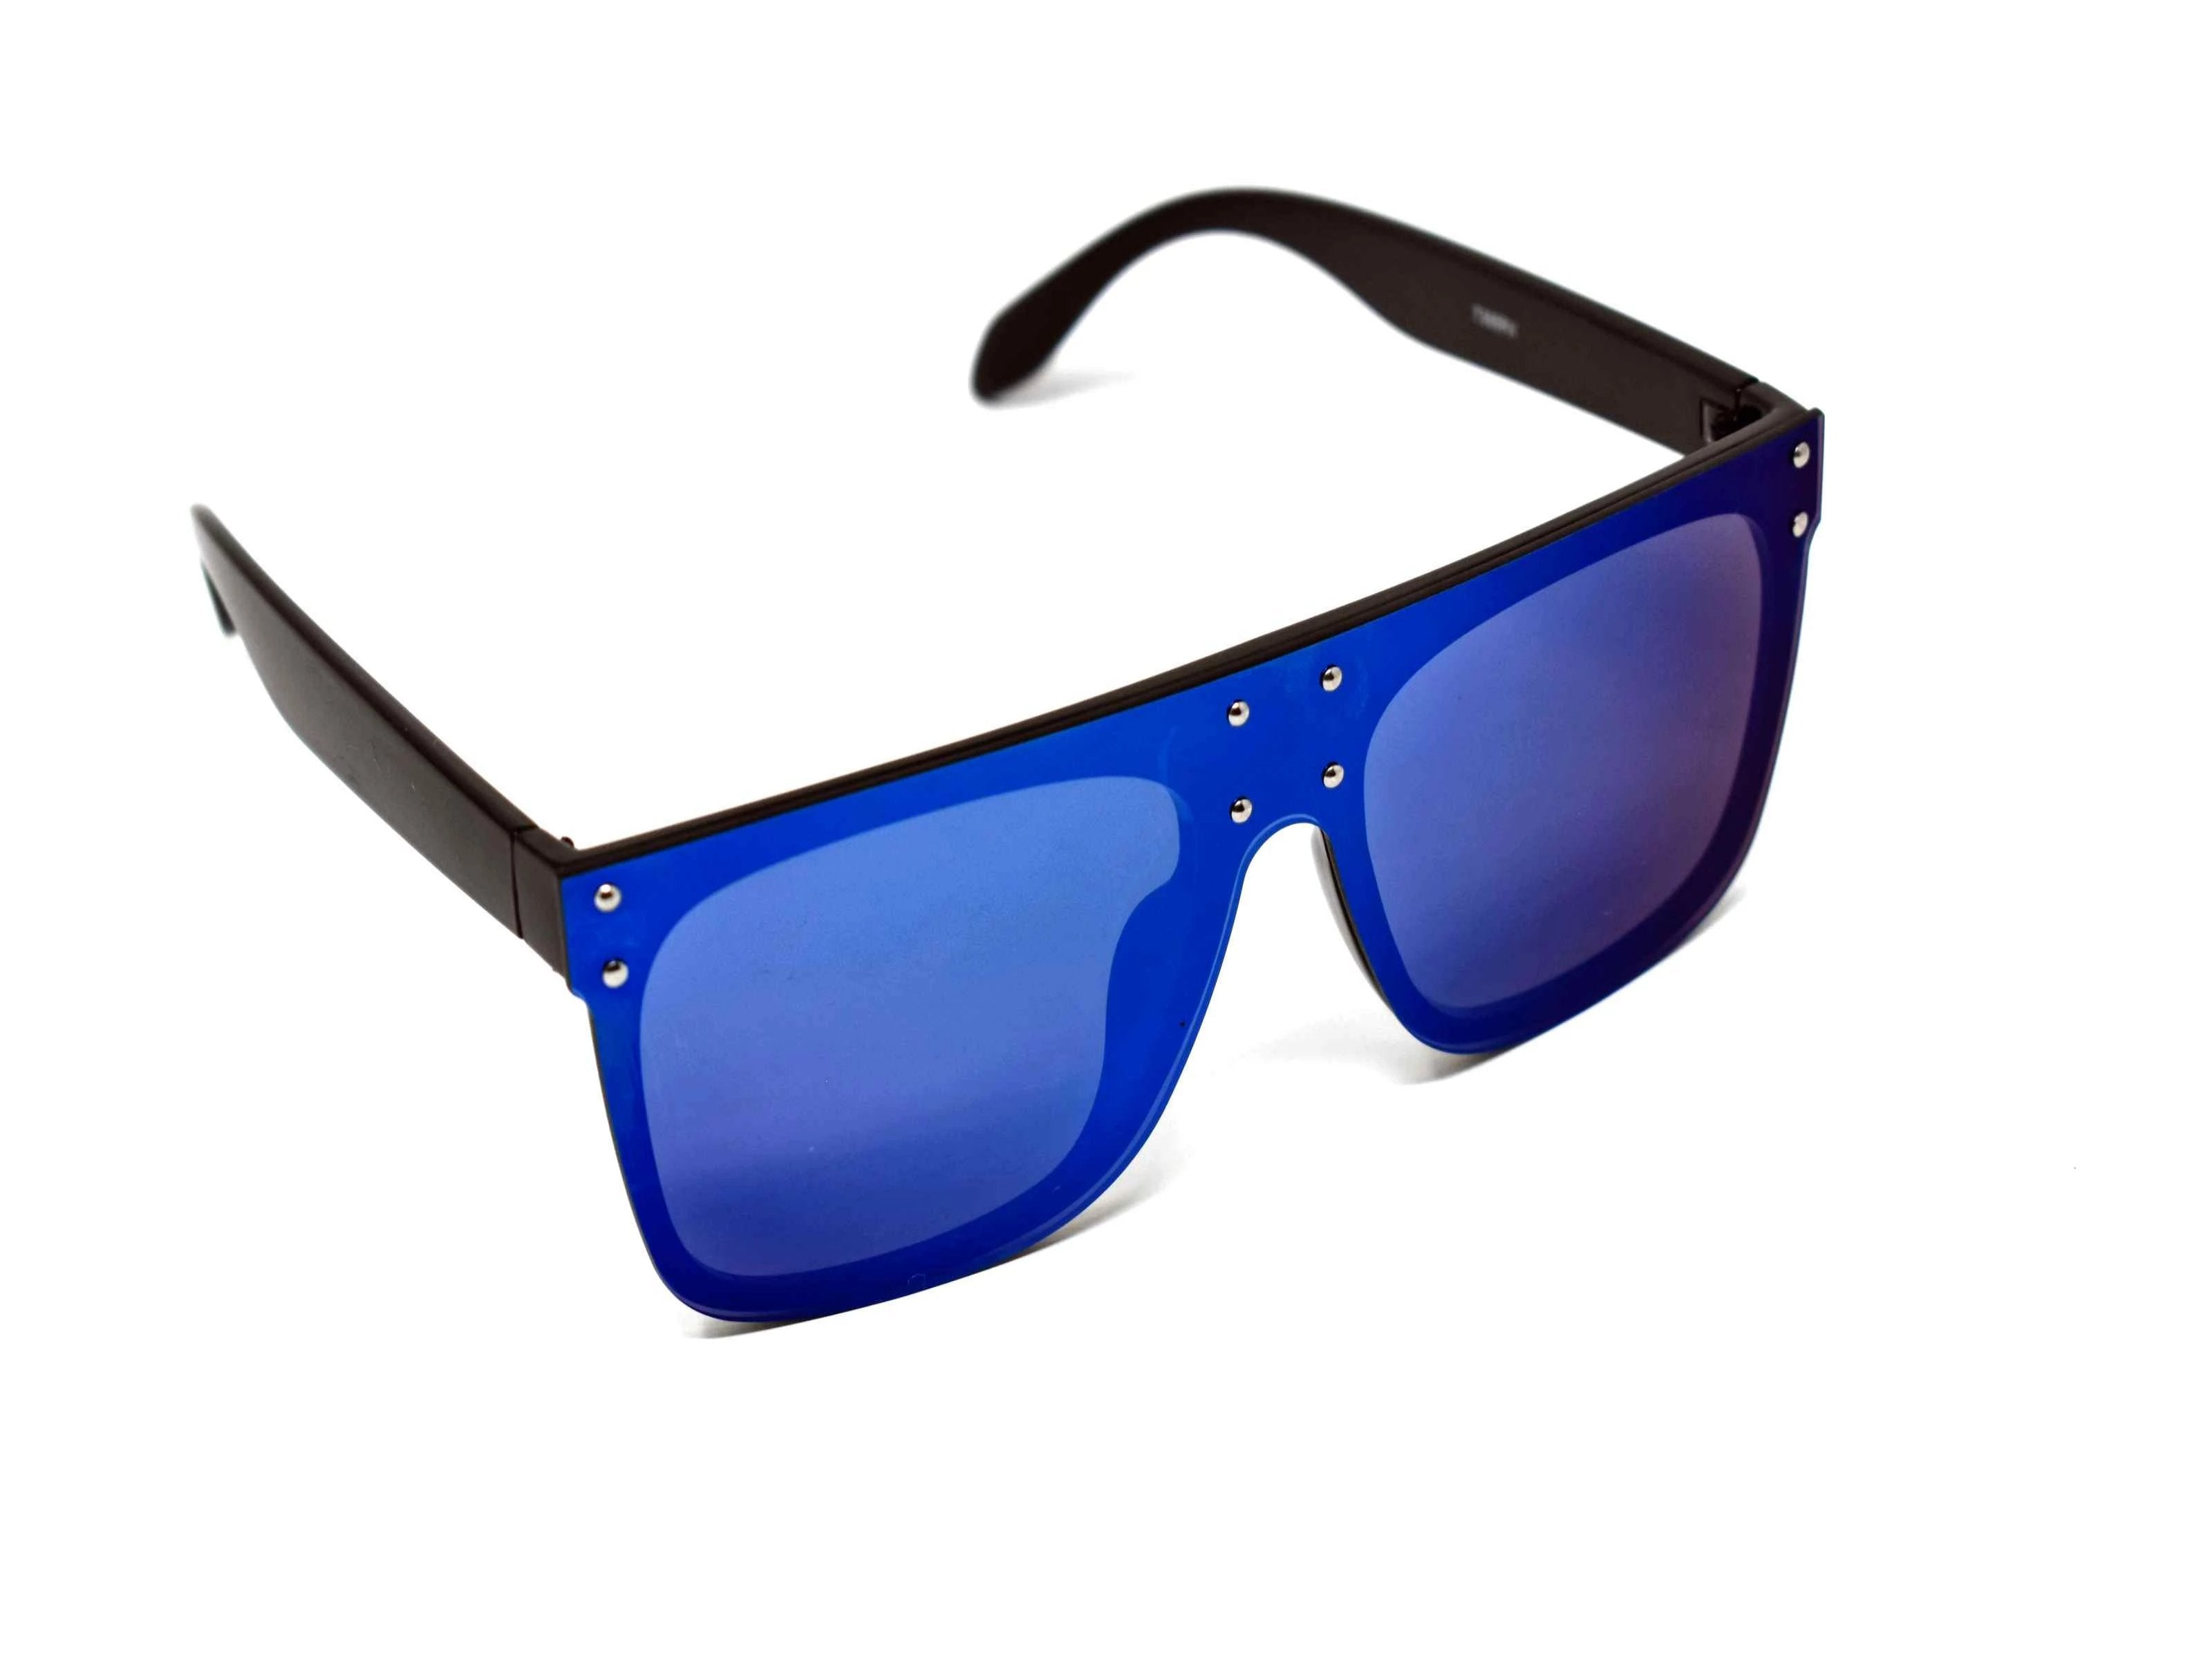 Rosa Blue Mirrored Lens Sunglasses Black